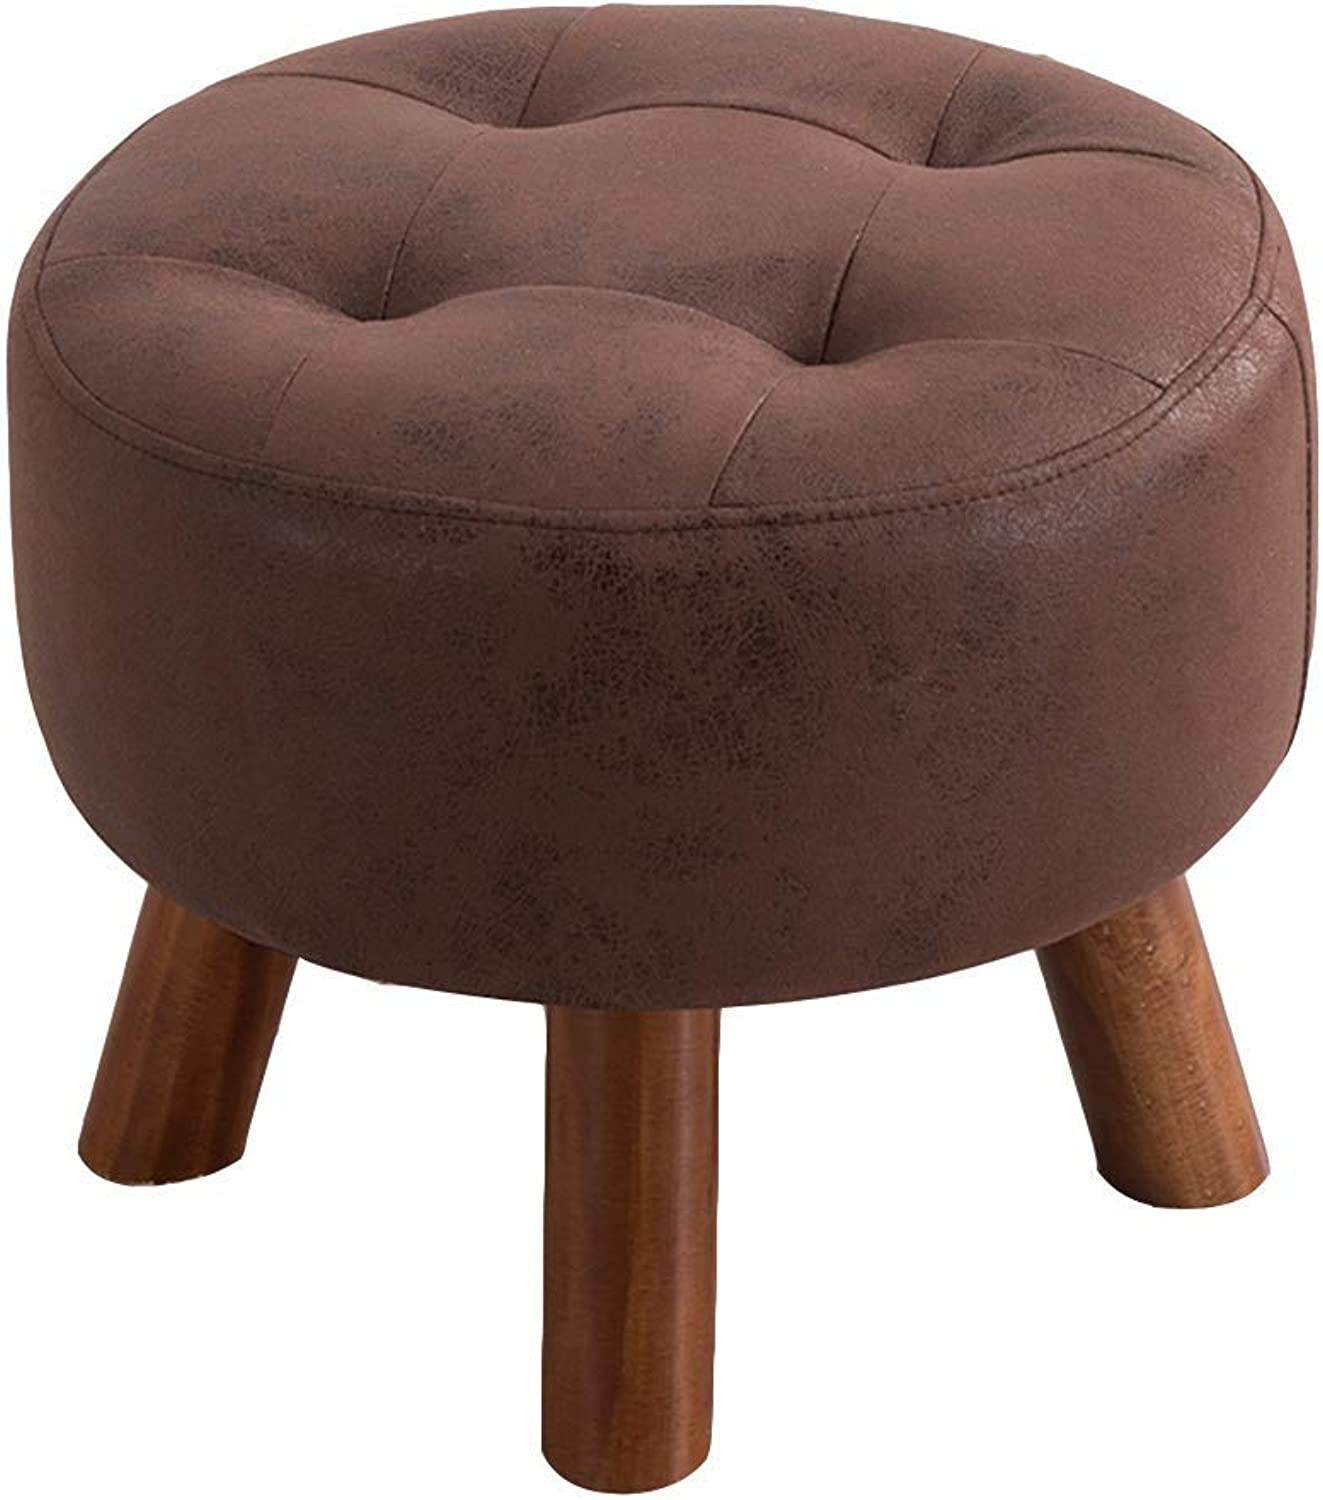 LUHEN Solid Wood Stool - Small Stool Fashion Creative Sofa Stool Coffee Table Wearing shoes Sitting Pier Dressing Footstool shoes Bench Stool (color   Dark Brown)